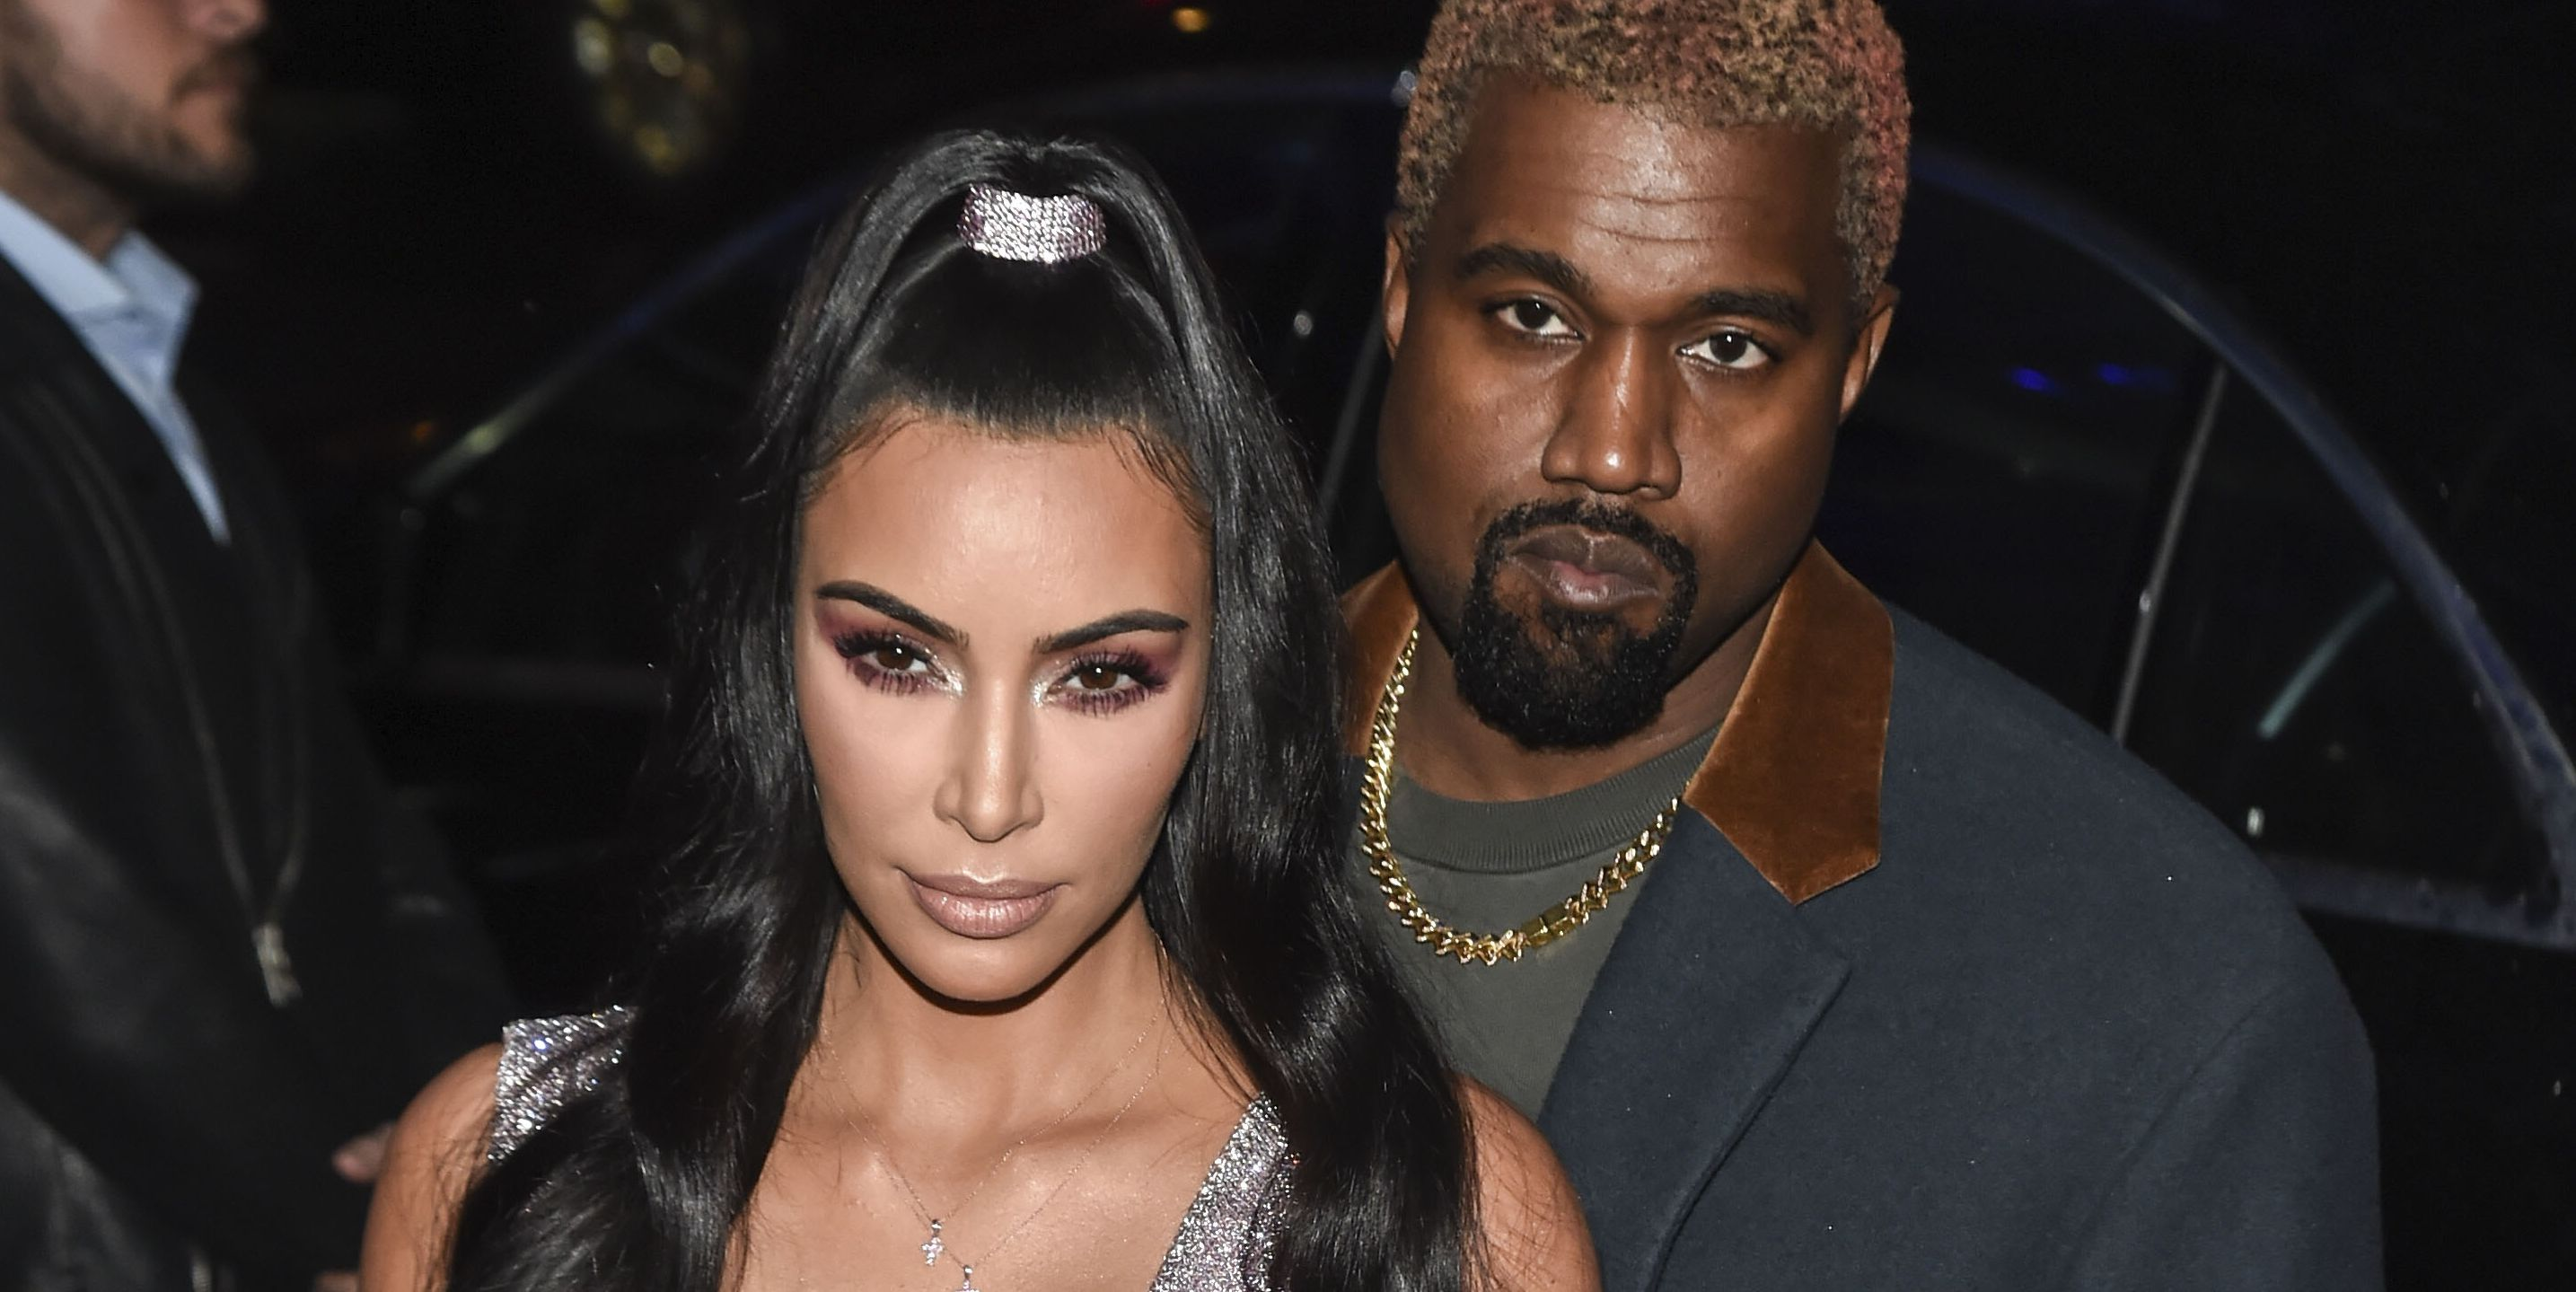 Kim Kardashian Apparently 'Can't Stand' Kanye West's Twitter Drama